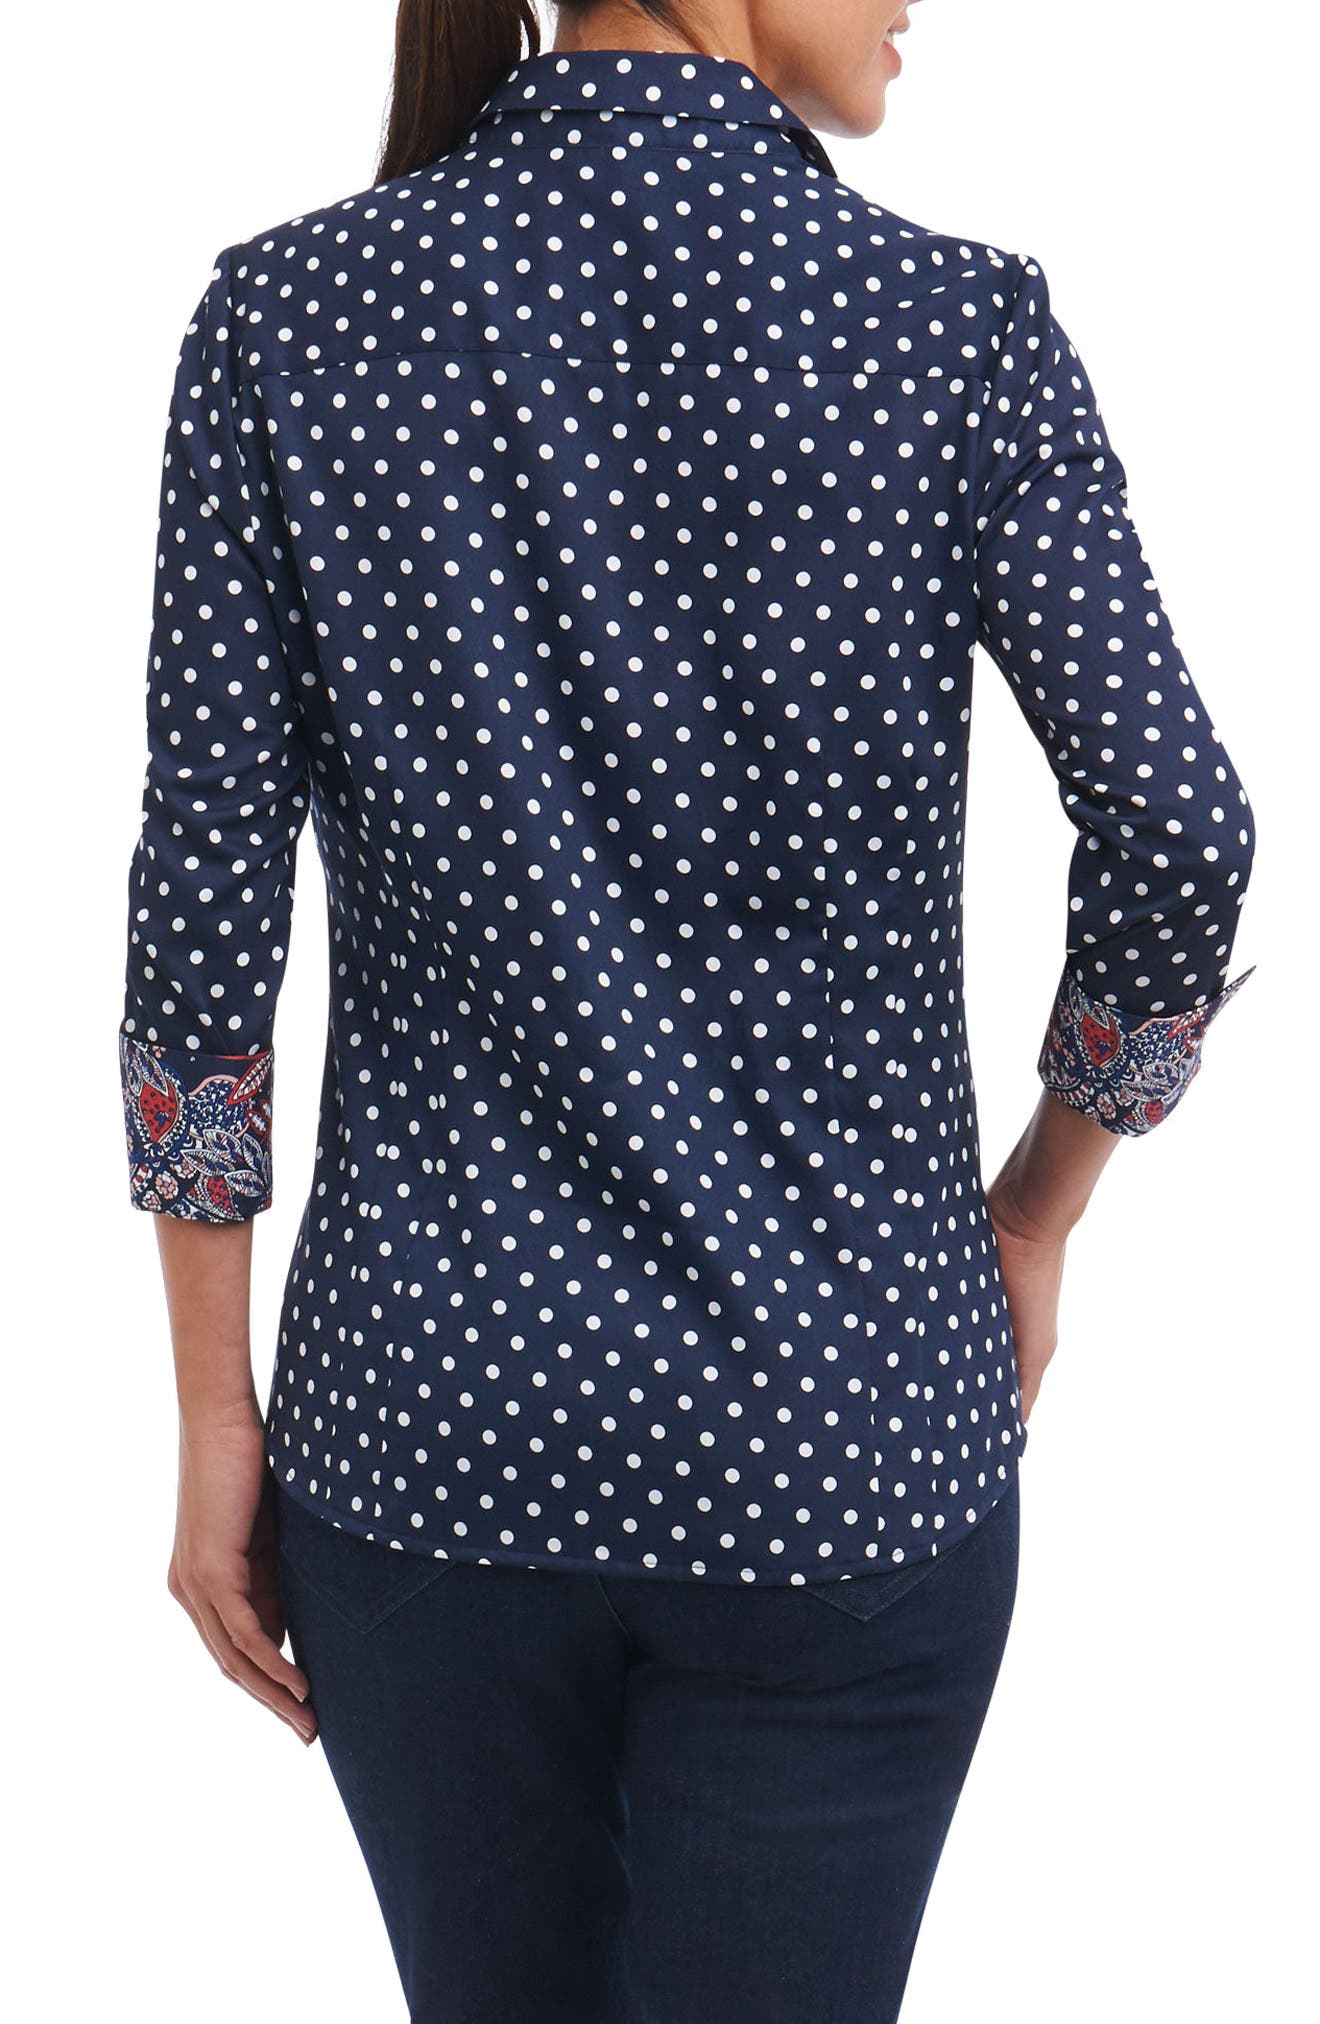 Taylor Classic Dot Non-Iron Cotton Shirt,                             Alternate thumbnail 2, color,                             Navy/ White